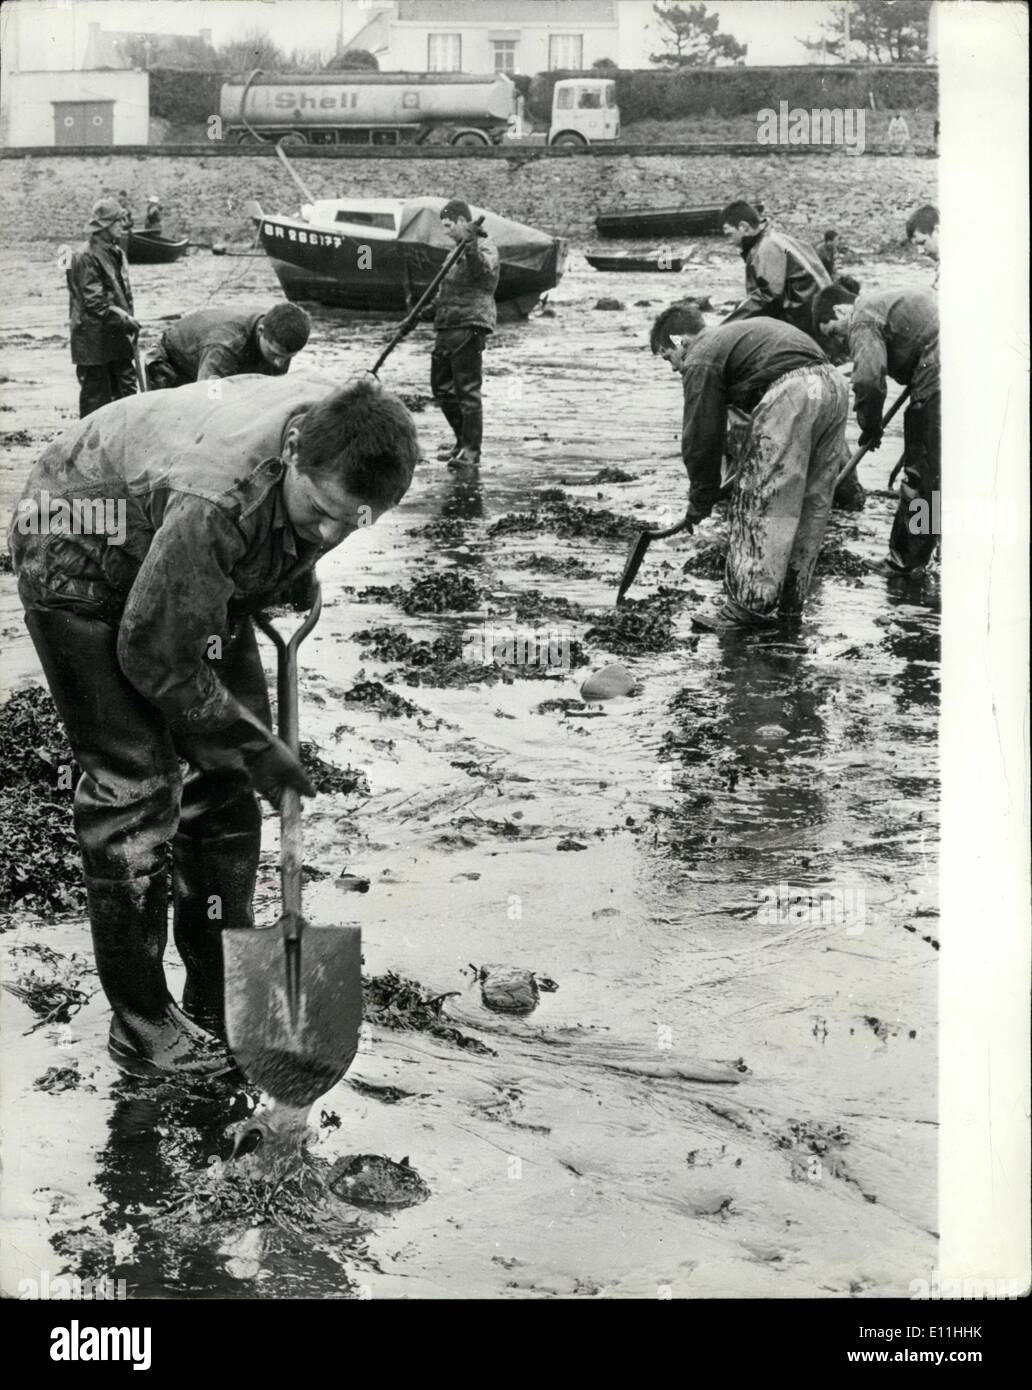 Mar. 03, 1978 - Oil crisis on the Brittany beaches. Disaster to bird and marine life has already arrived on the french coastline, as a result of the oil discharged by the Amoco Cadiz oil tanker. Tremendous efforts are being made by the local police. aided by volunteers from all over France, to lesson the effects. Schoolchildren on holiday are traveling from Paris to help. Hundreds of plastic brackets and small containers have been collected in warehouses for distribution to the army of helpers and veterinary experts are at work saving as many sea birds as they can - Stock Image